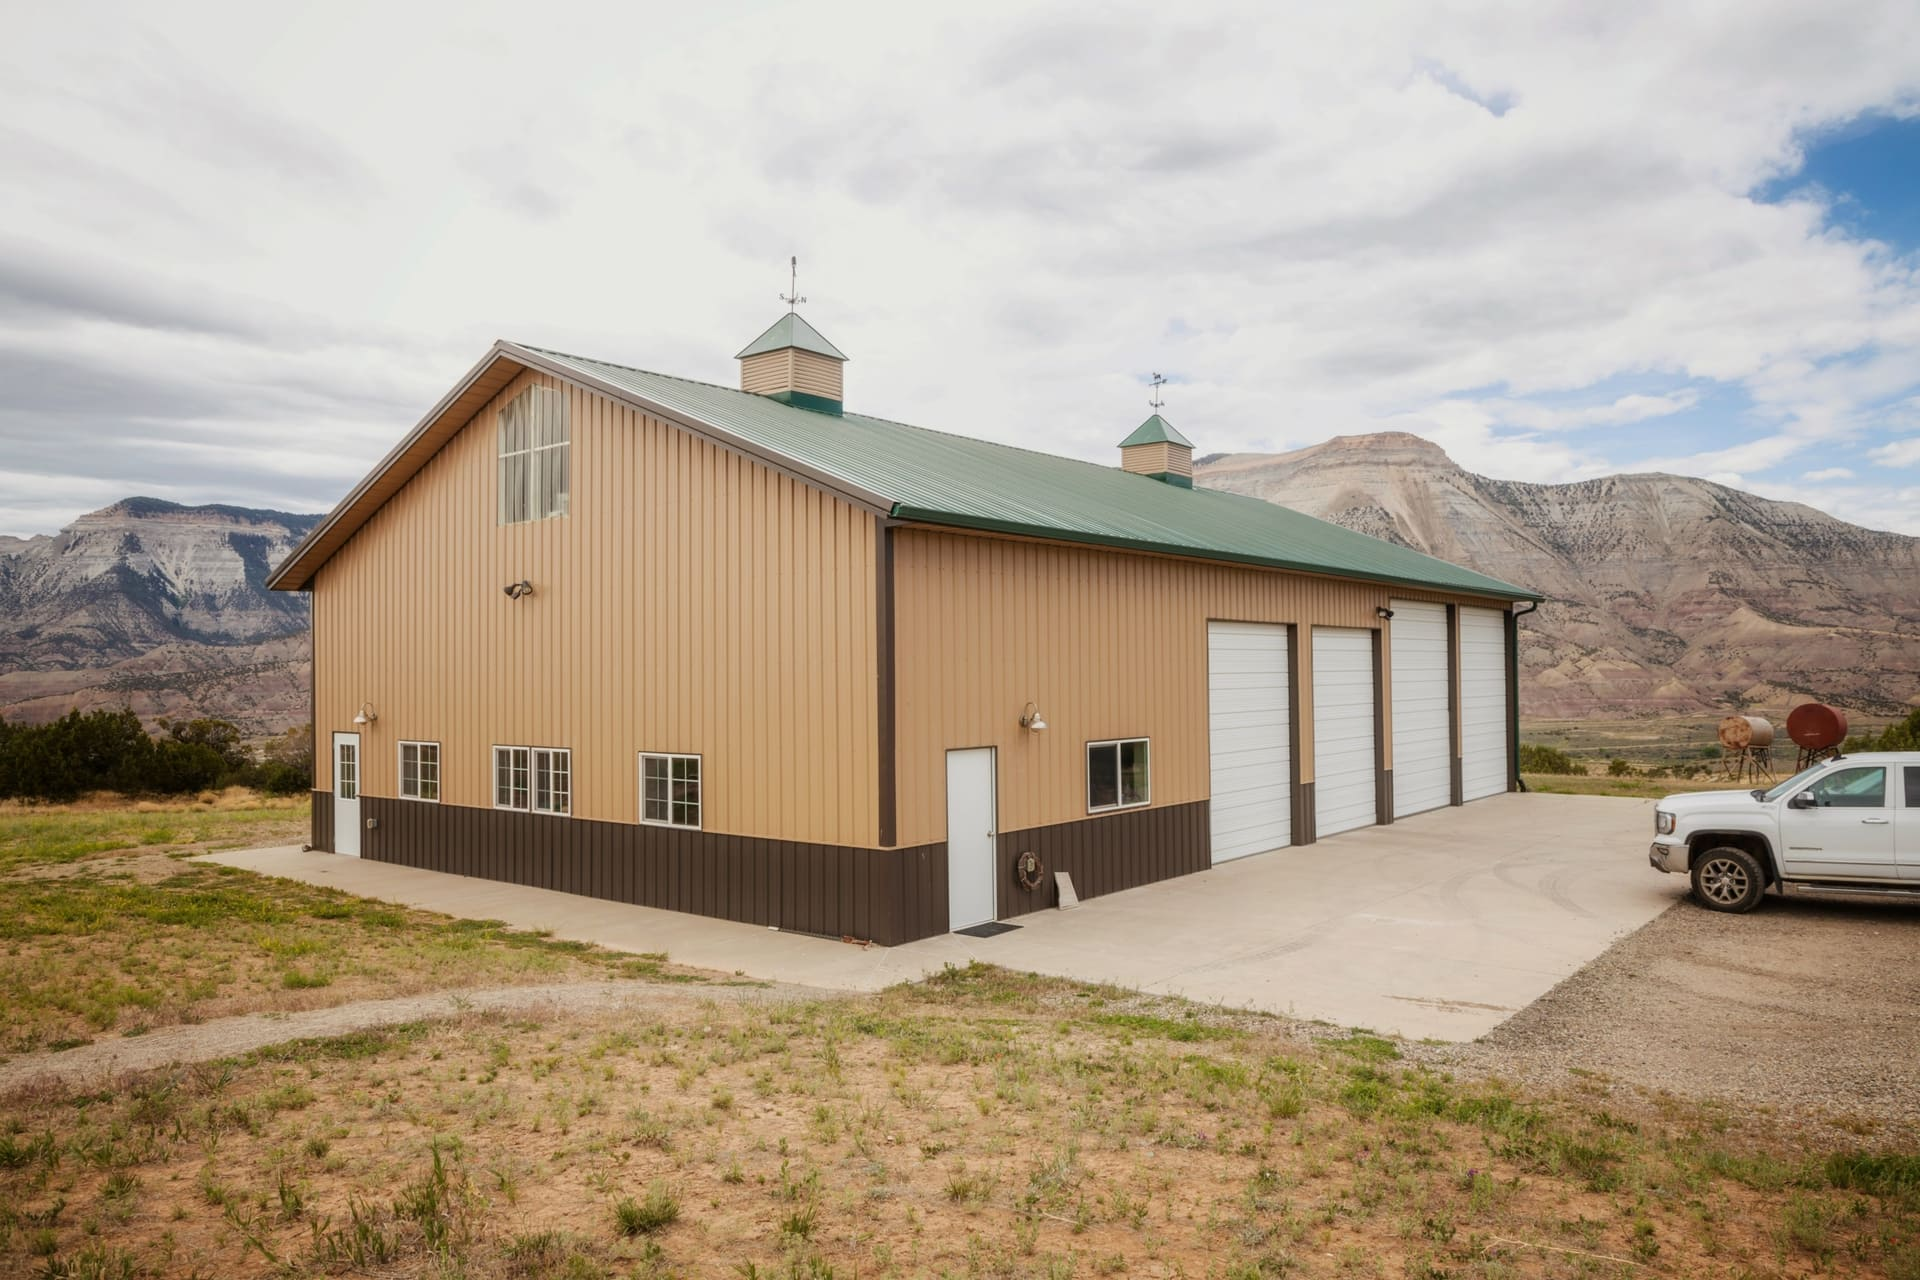 garage exterior colorado 4k quarter circle ranch